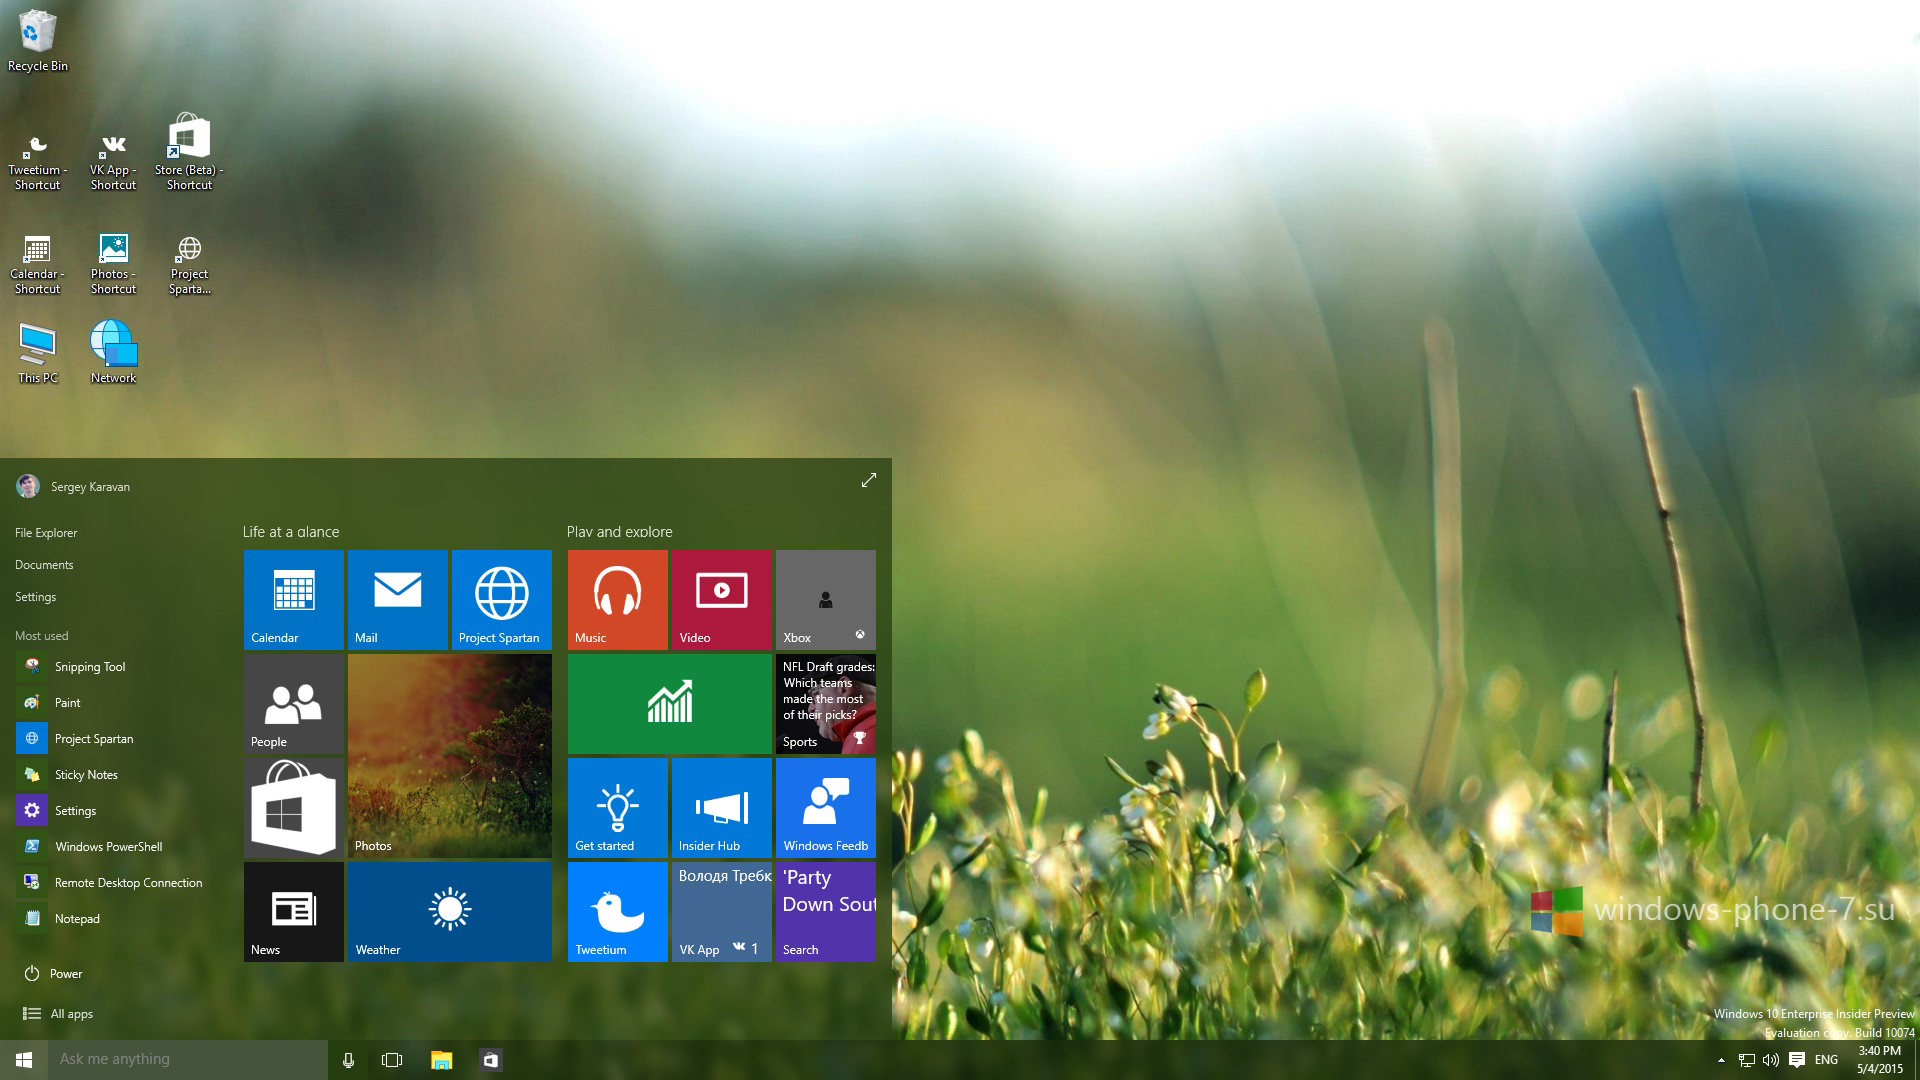 Windows 10 insider preview build 10130 x 86 x64 iso download in windows 10 insider preview last version iso desktop ccuart Images